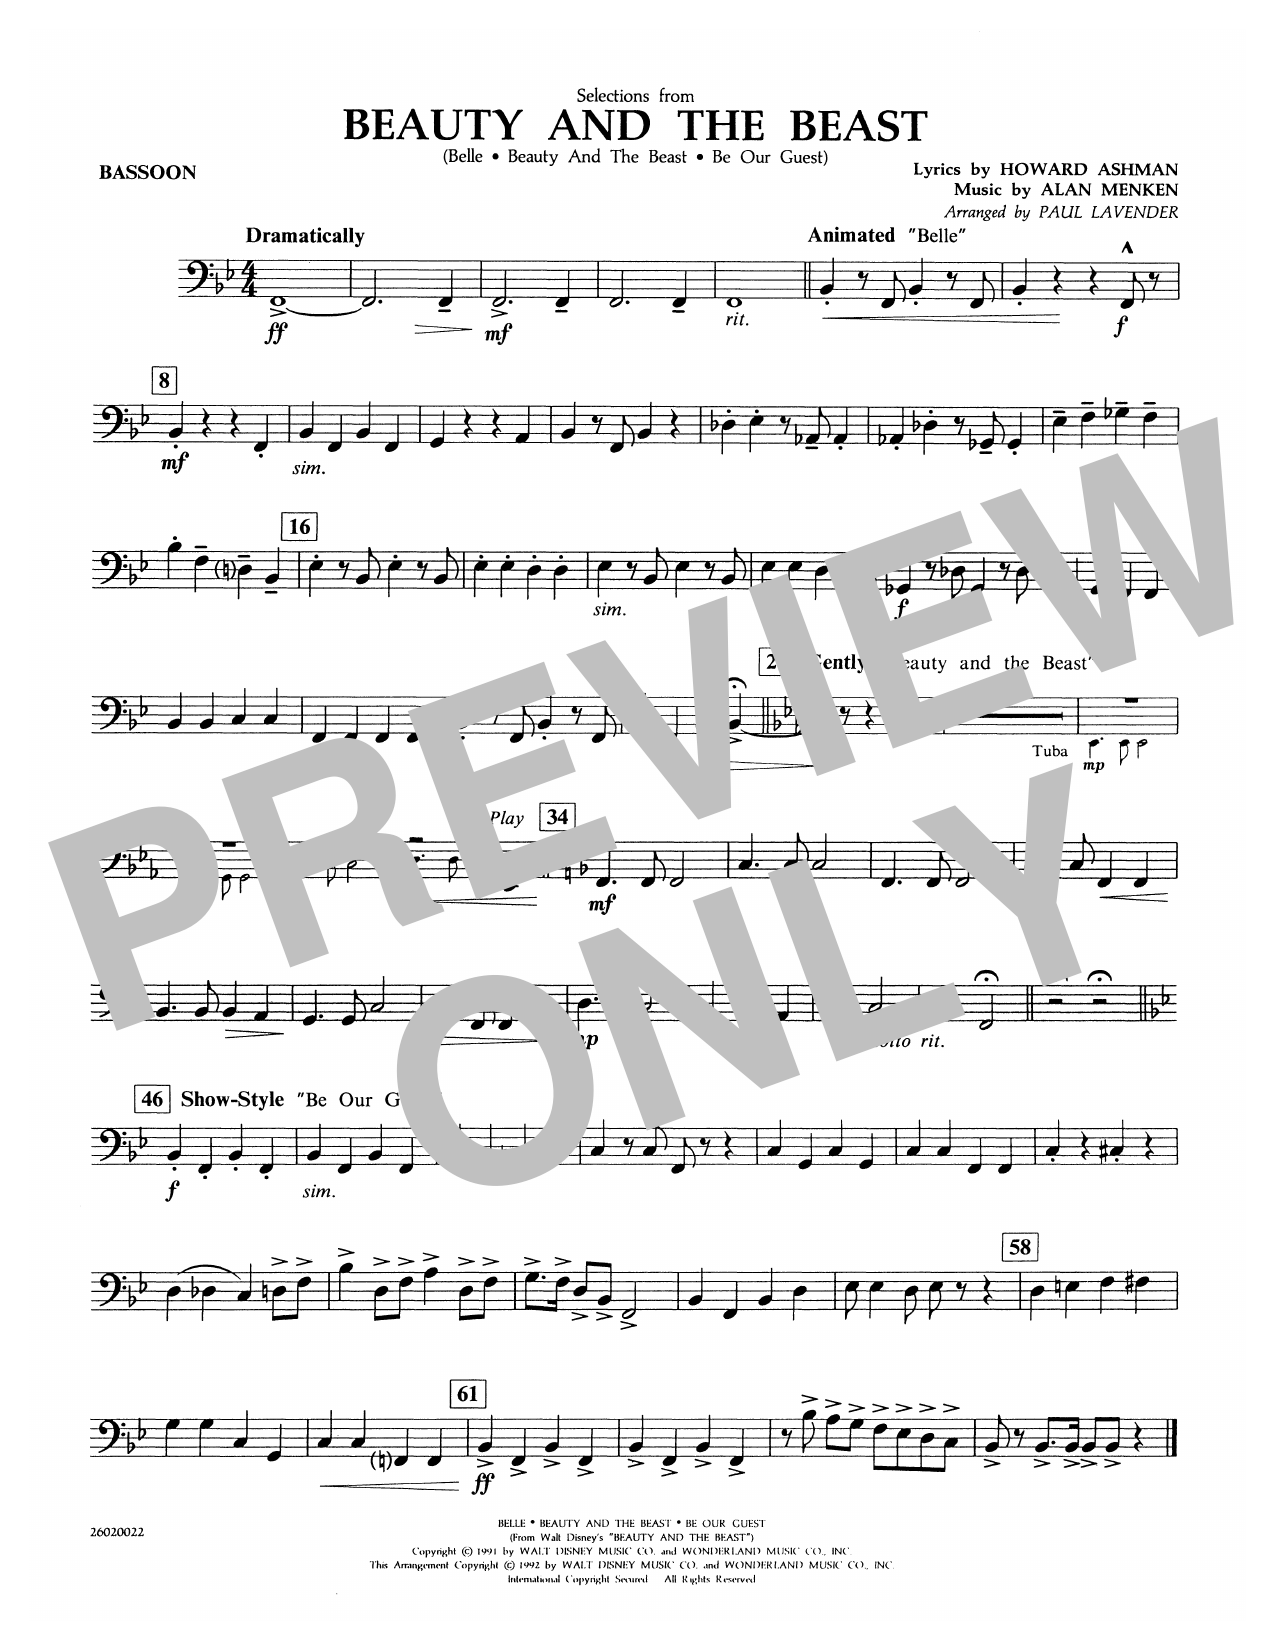 Selections from Beauty and the Beast - Bassoon Partition Digitale